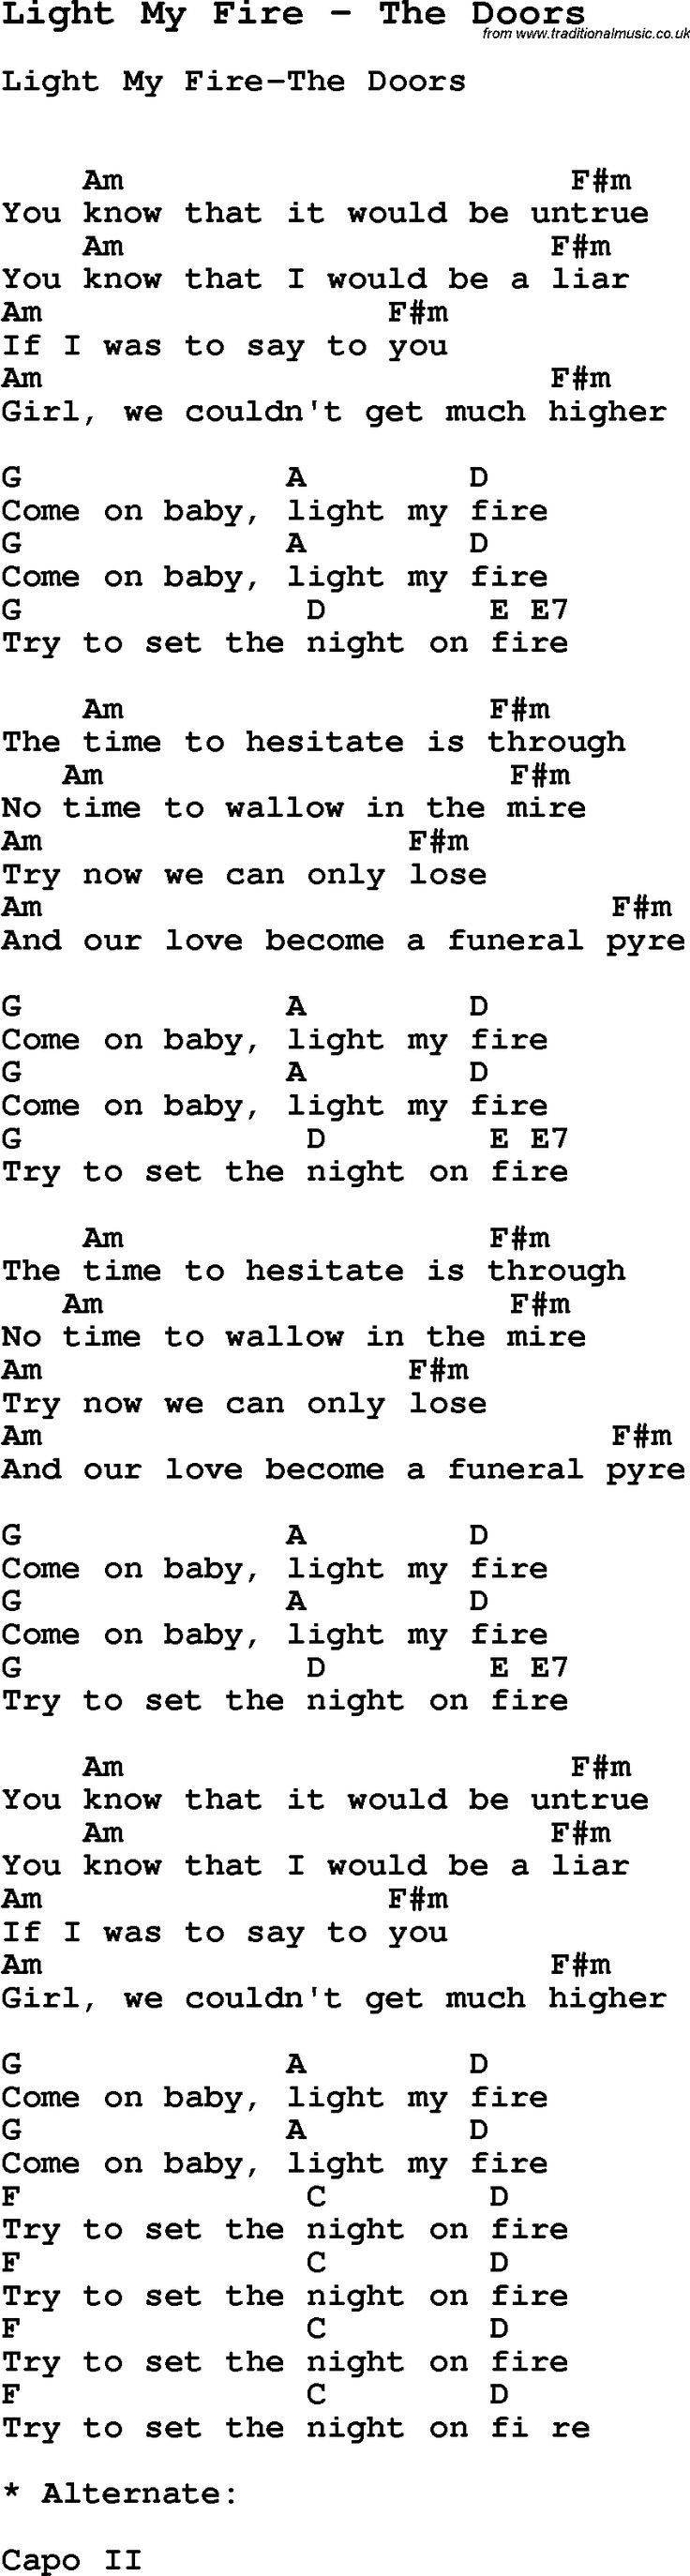 332 best guitar lyrics and chords images on pinterest guitar the doors light my fire wlyrics guitar chords and accompaniment chords for ukulele guitar banjo etc hexwebz Images